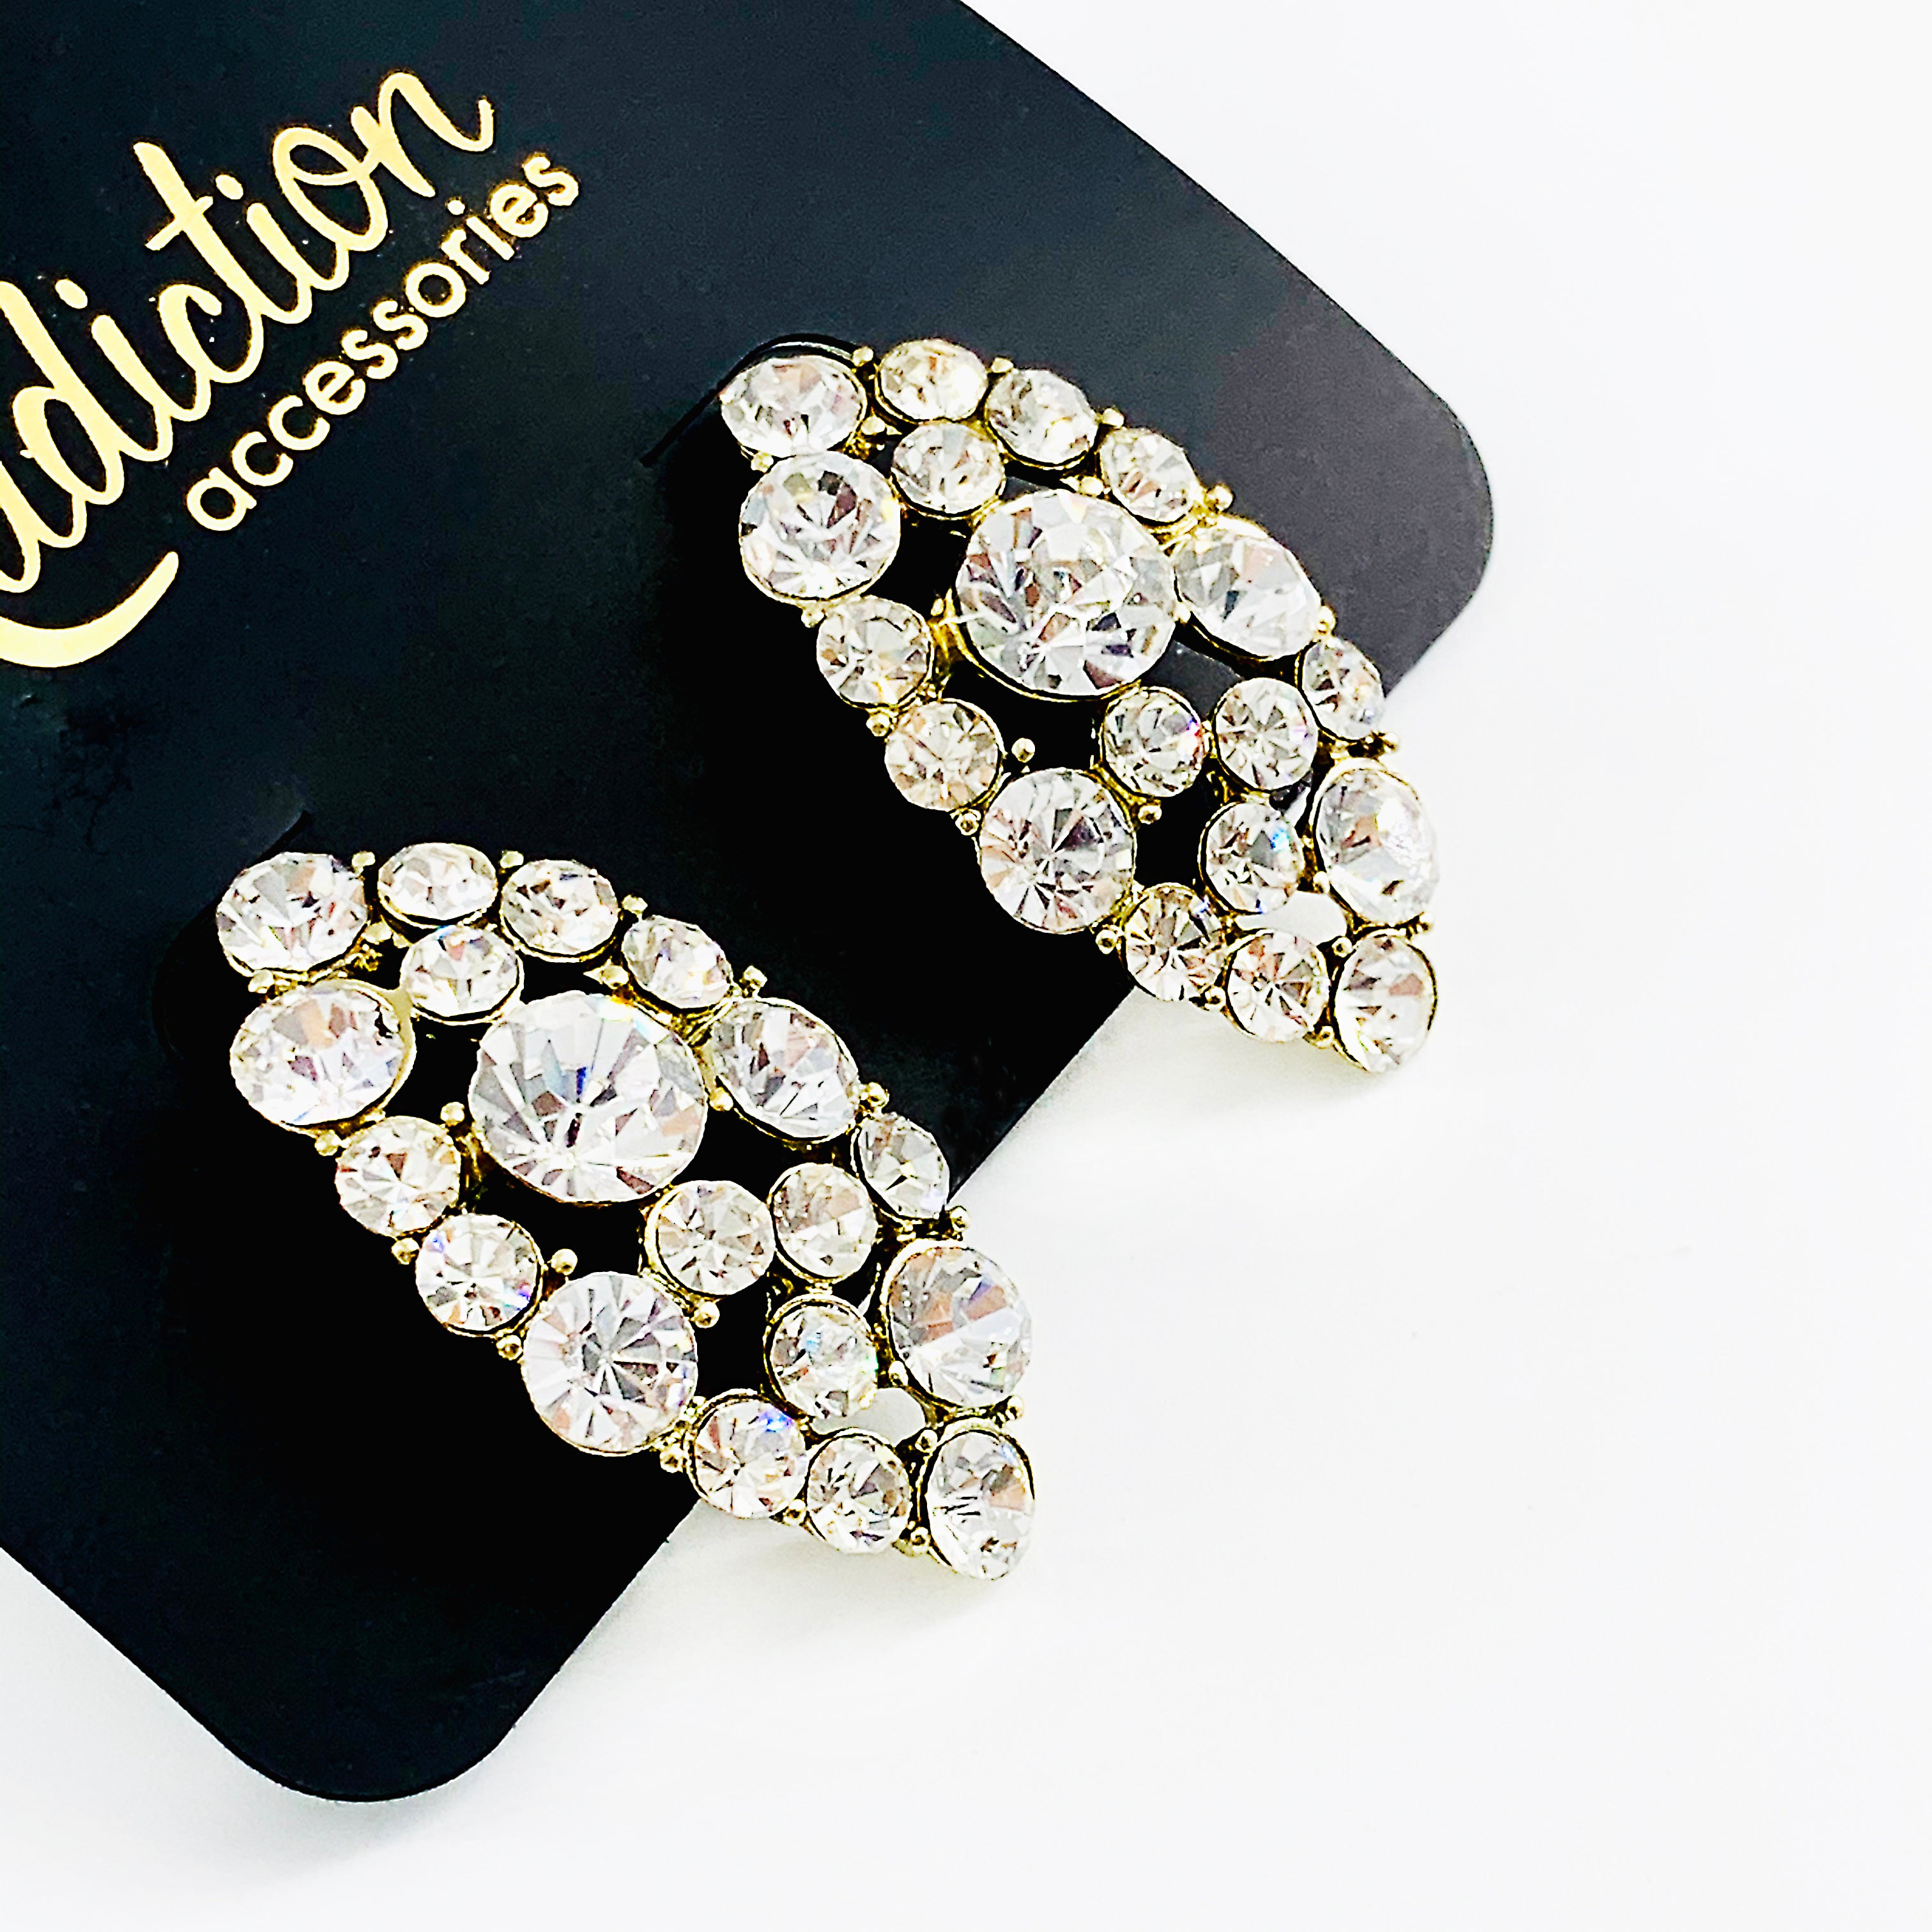 Earrings embellished with diamante stones